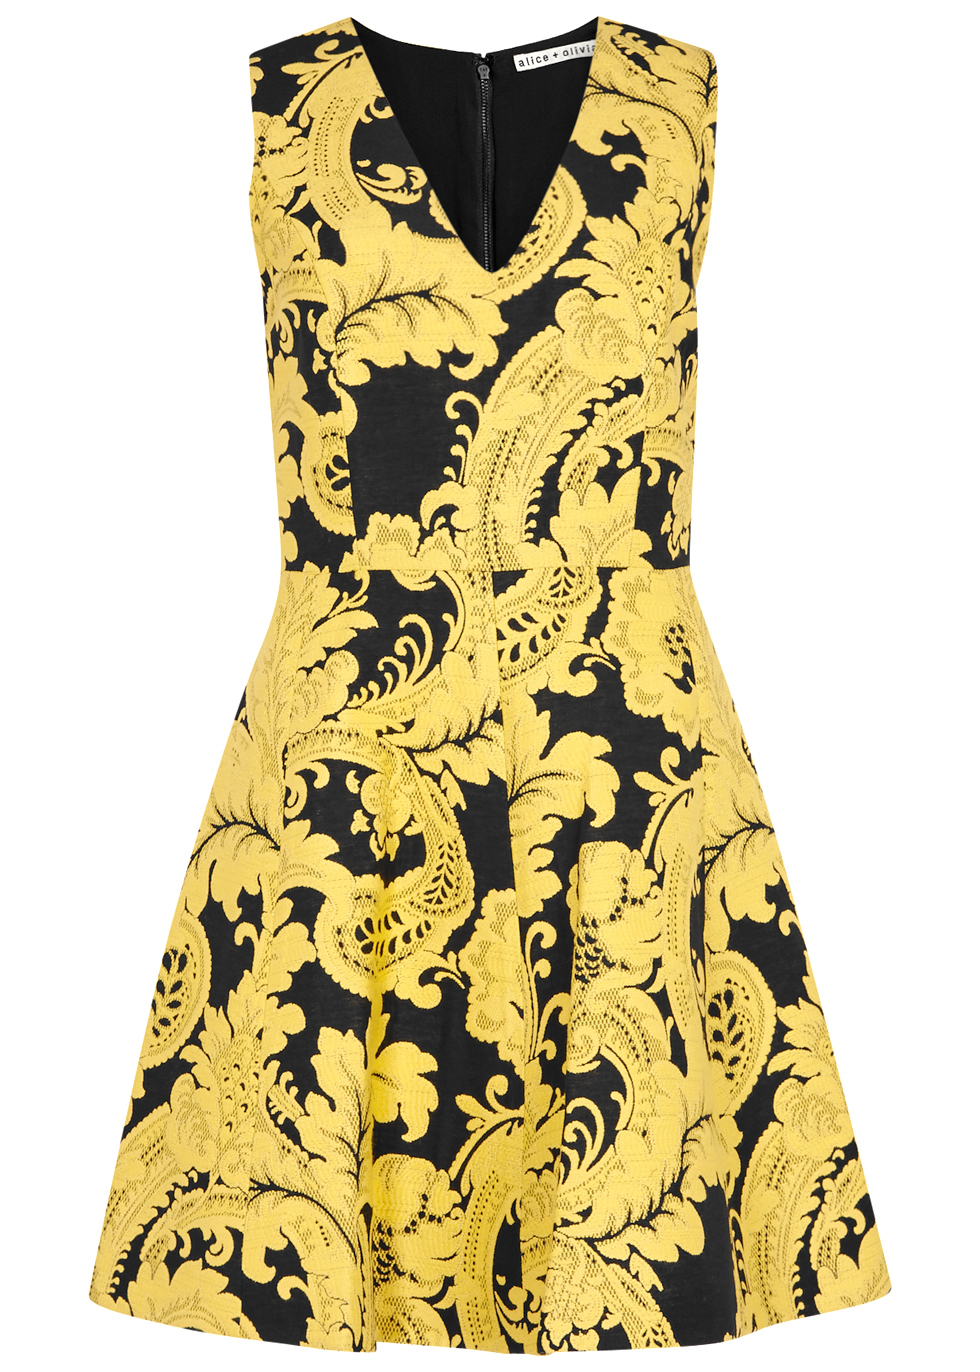 Nicolette Yellow Jacquard Mini Dress - neckline: v-neck; sleeve style: sleeveless; predominant colour: yellow; secondary colour: black; occasions: evening; length: just above the knee; fit: fitted at waist & bust; style: fit & flare; fibres: acrylic - mix; sleeve length: sleeveless; pattern type: fabric; pattern: patterned/print; texture group: brocade/jacquard; multicoloured: multicoloured; season: a/w 2016; wardrobe: event